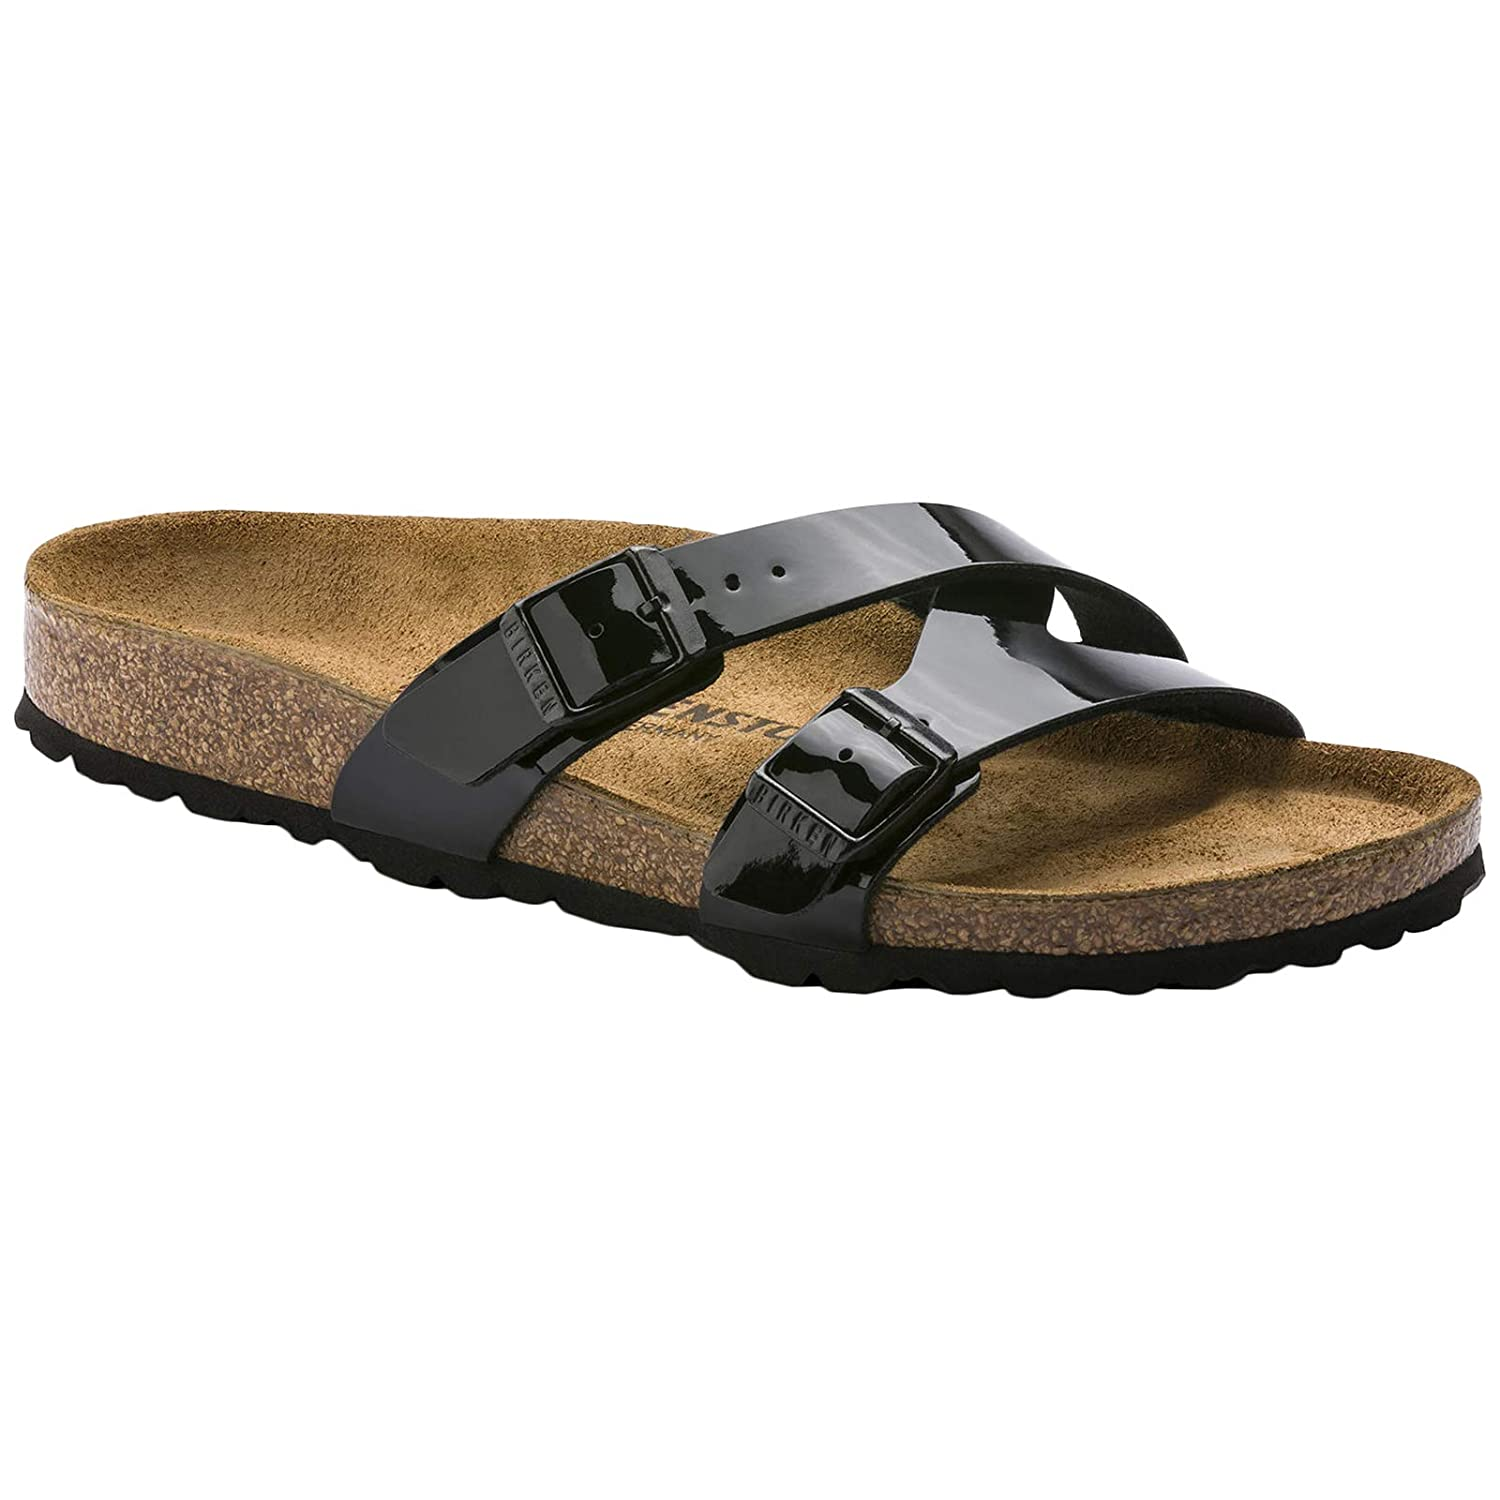 618fa0a0ae9 Birkenstock Unisex Yao Balance Birko-Flor Black Sandals 5.5 UK  Amazon.co.uk   Shoes   Bags